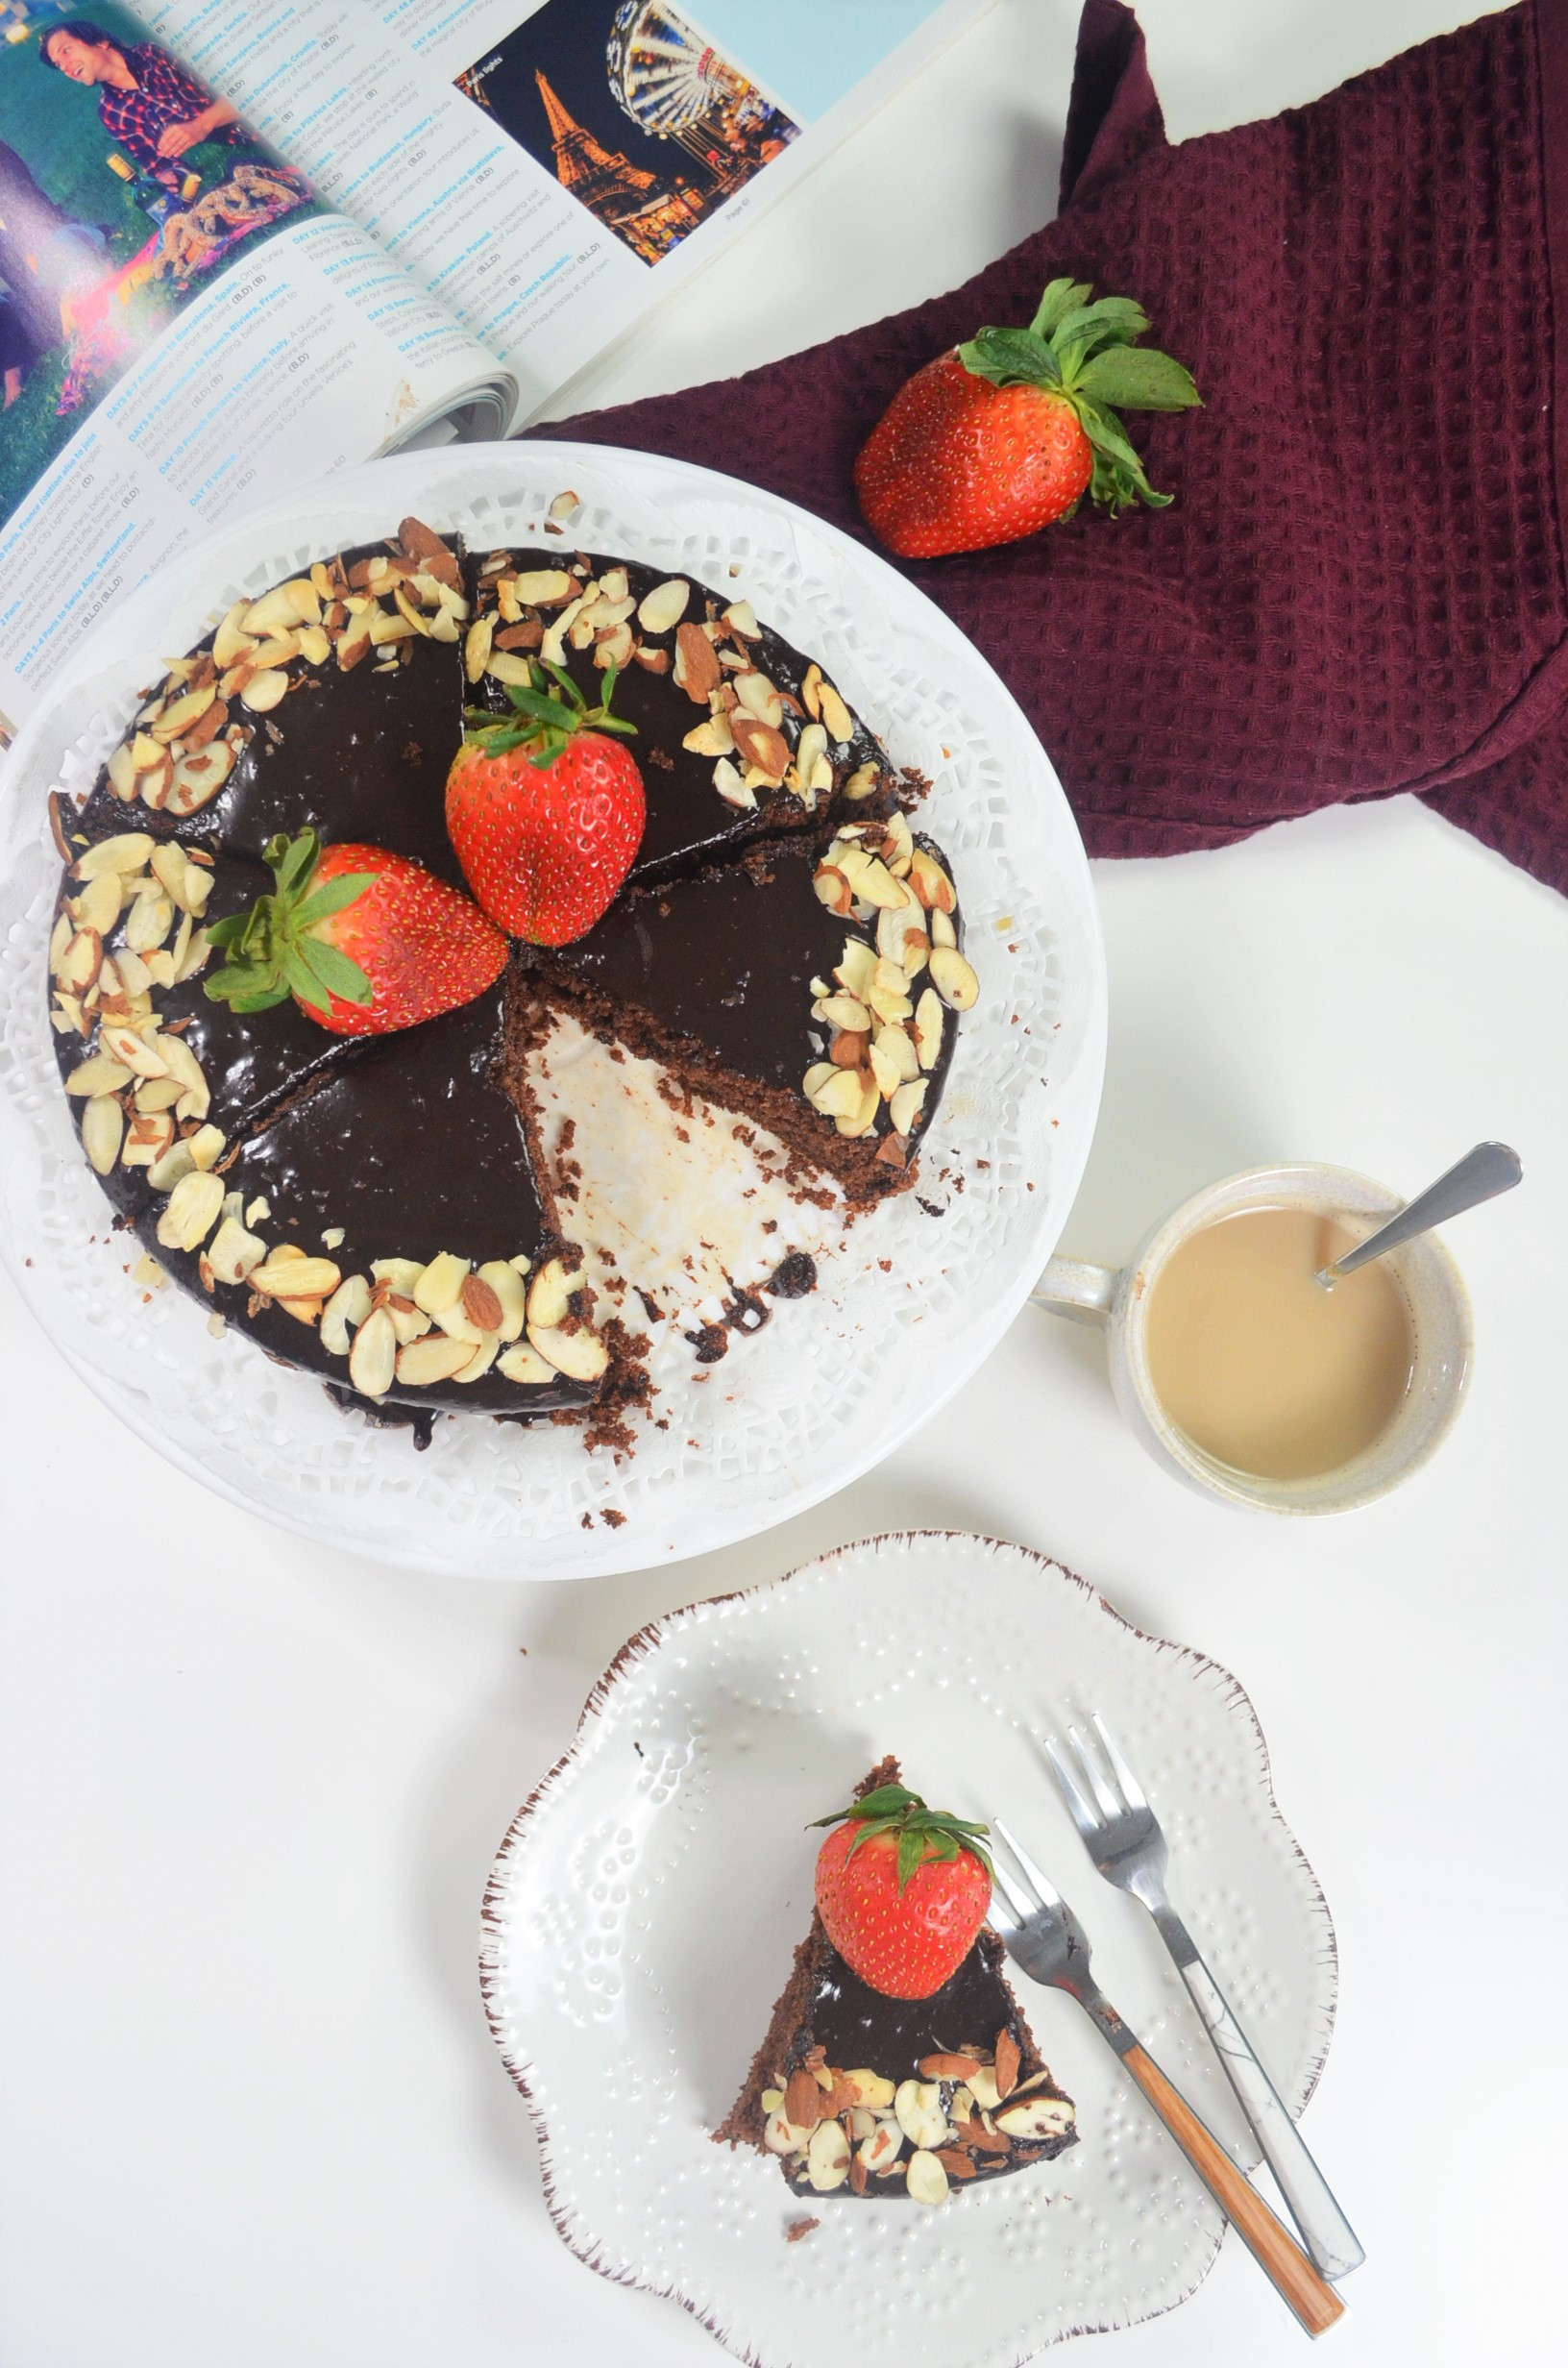 Chocolate Almond Ricotta Cake